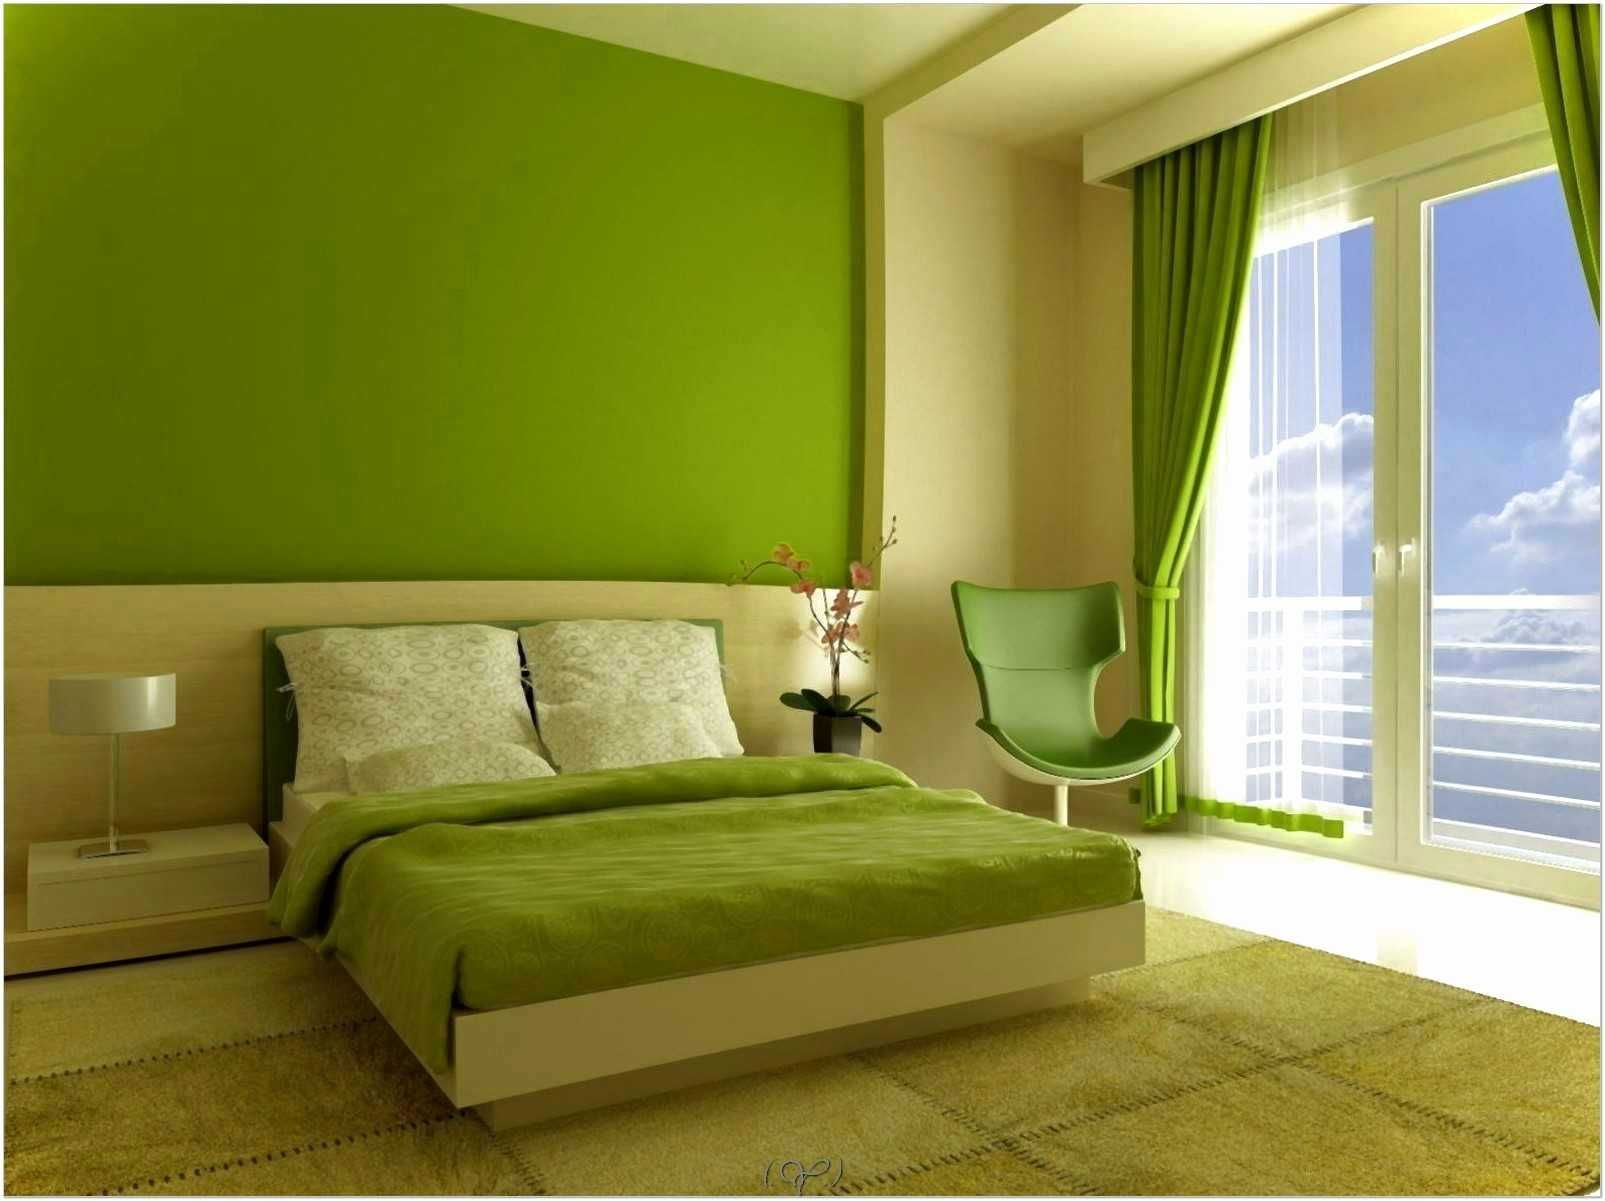 Wardrobe Designs For Master Bedroom Indian Luxury Wardrobe Designs For Master Bedroom Ind Green And White Bedroom Bedroom Wall Colors Furniture Color Schemes